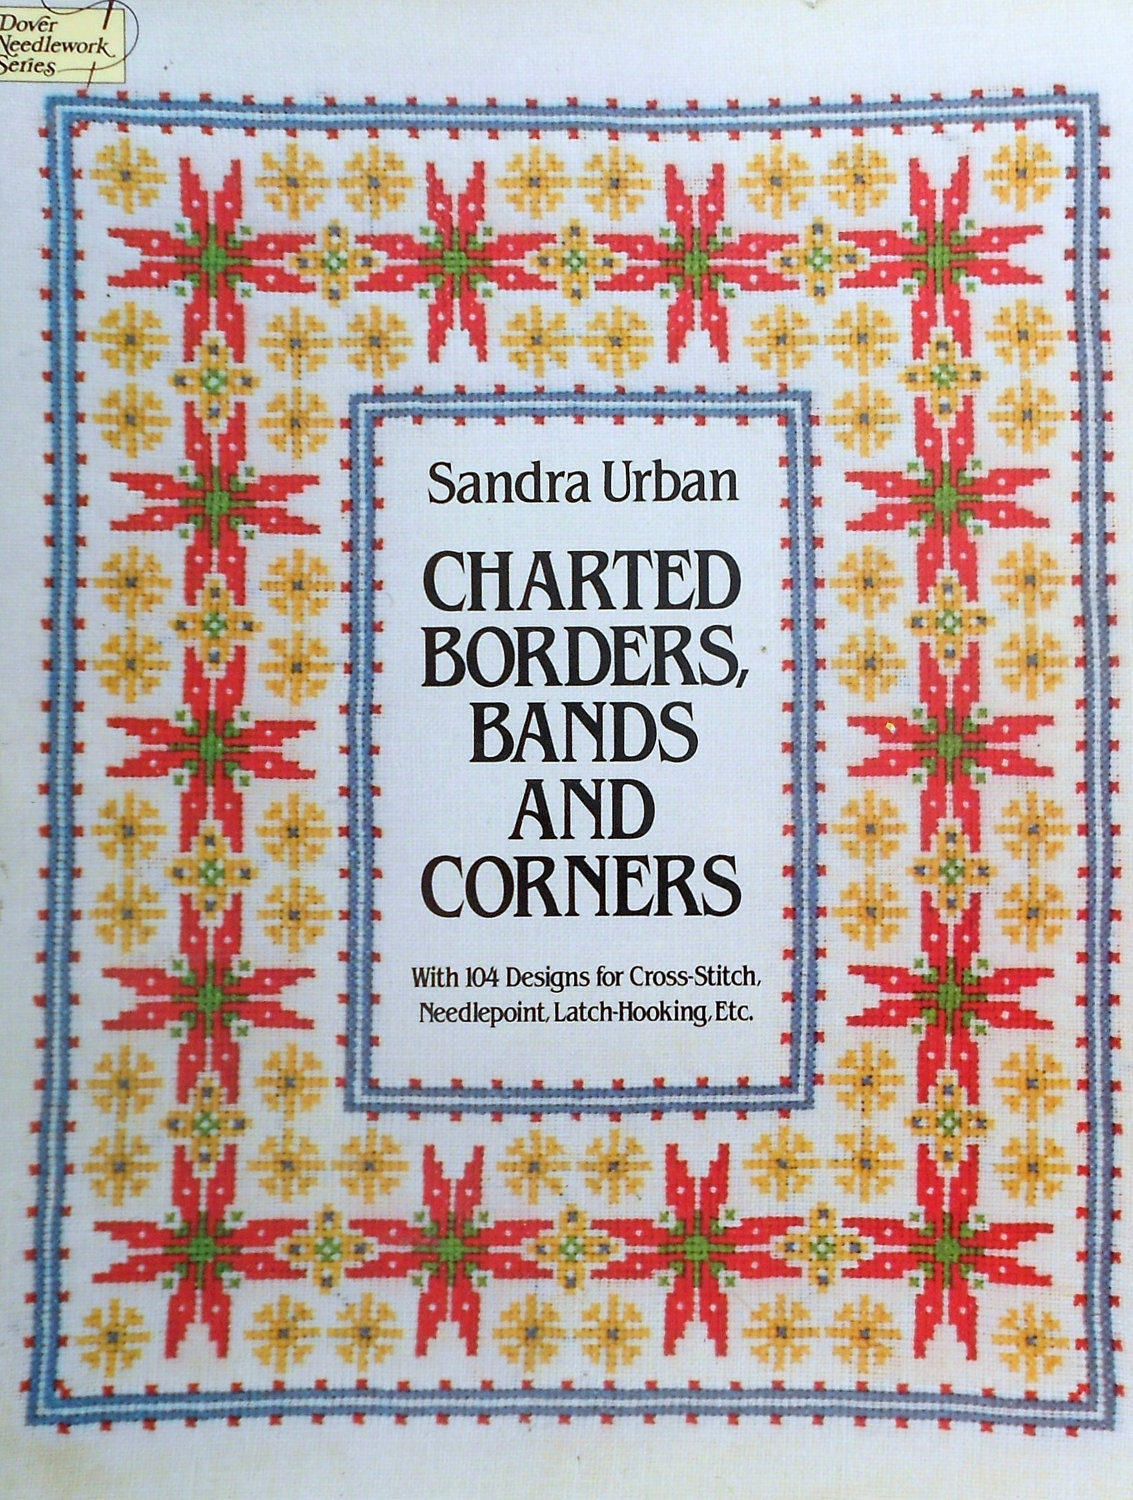 Charted Borders, Bands and Corners (Dover needlework series) Sandra Urban